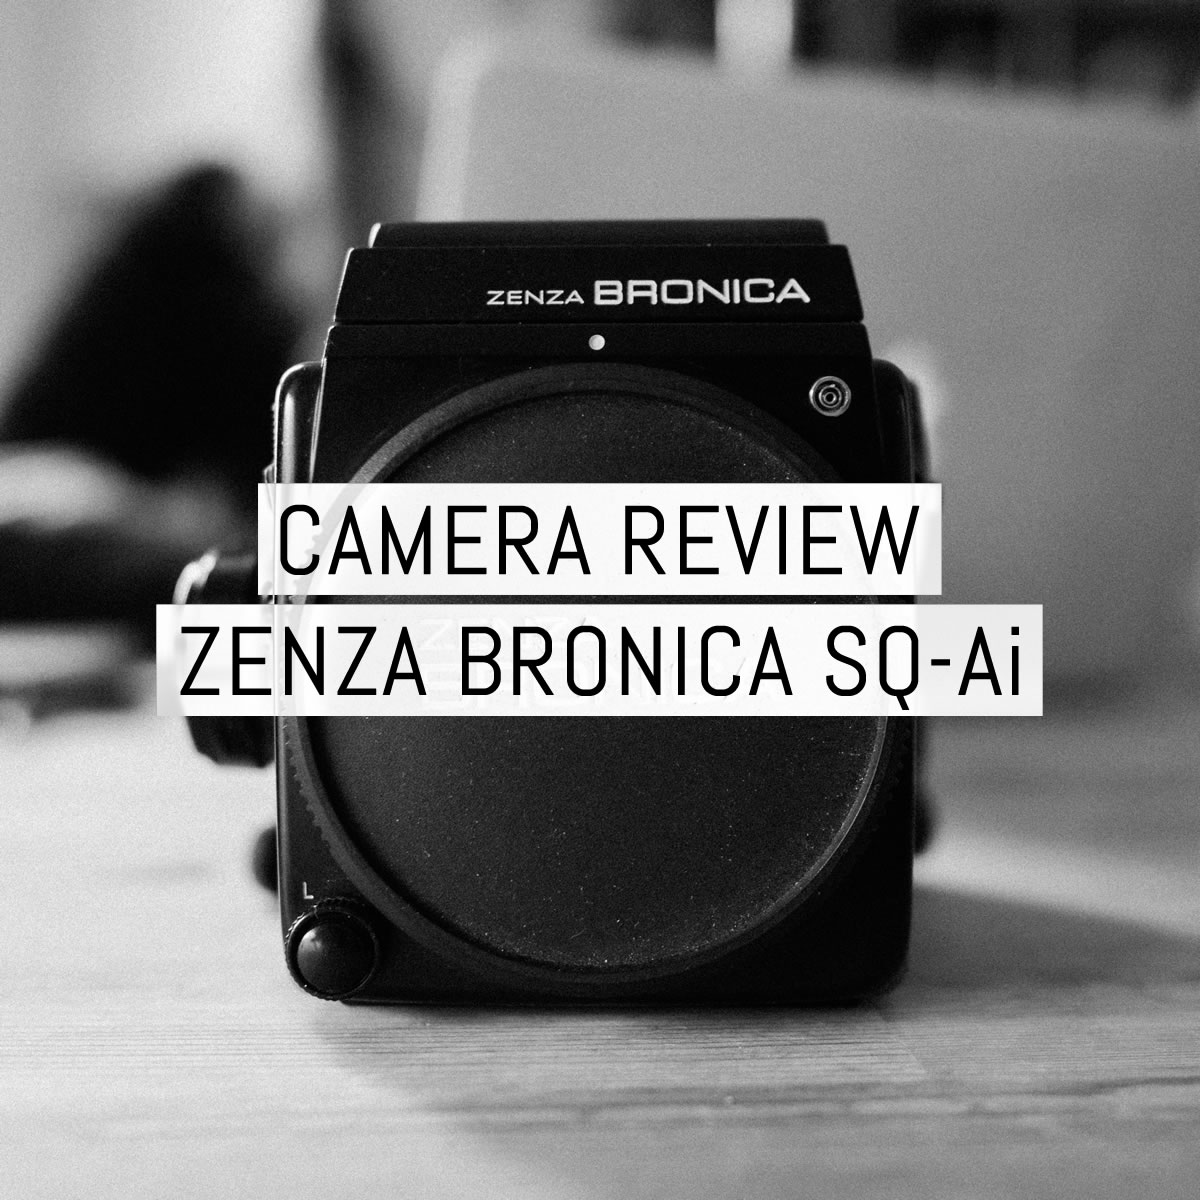 Camera review: Bronica SQ-Ai - by Adrian Vila